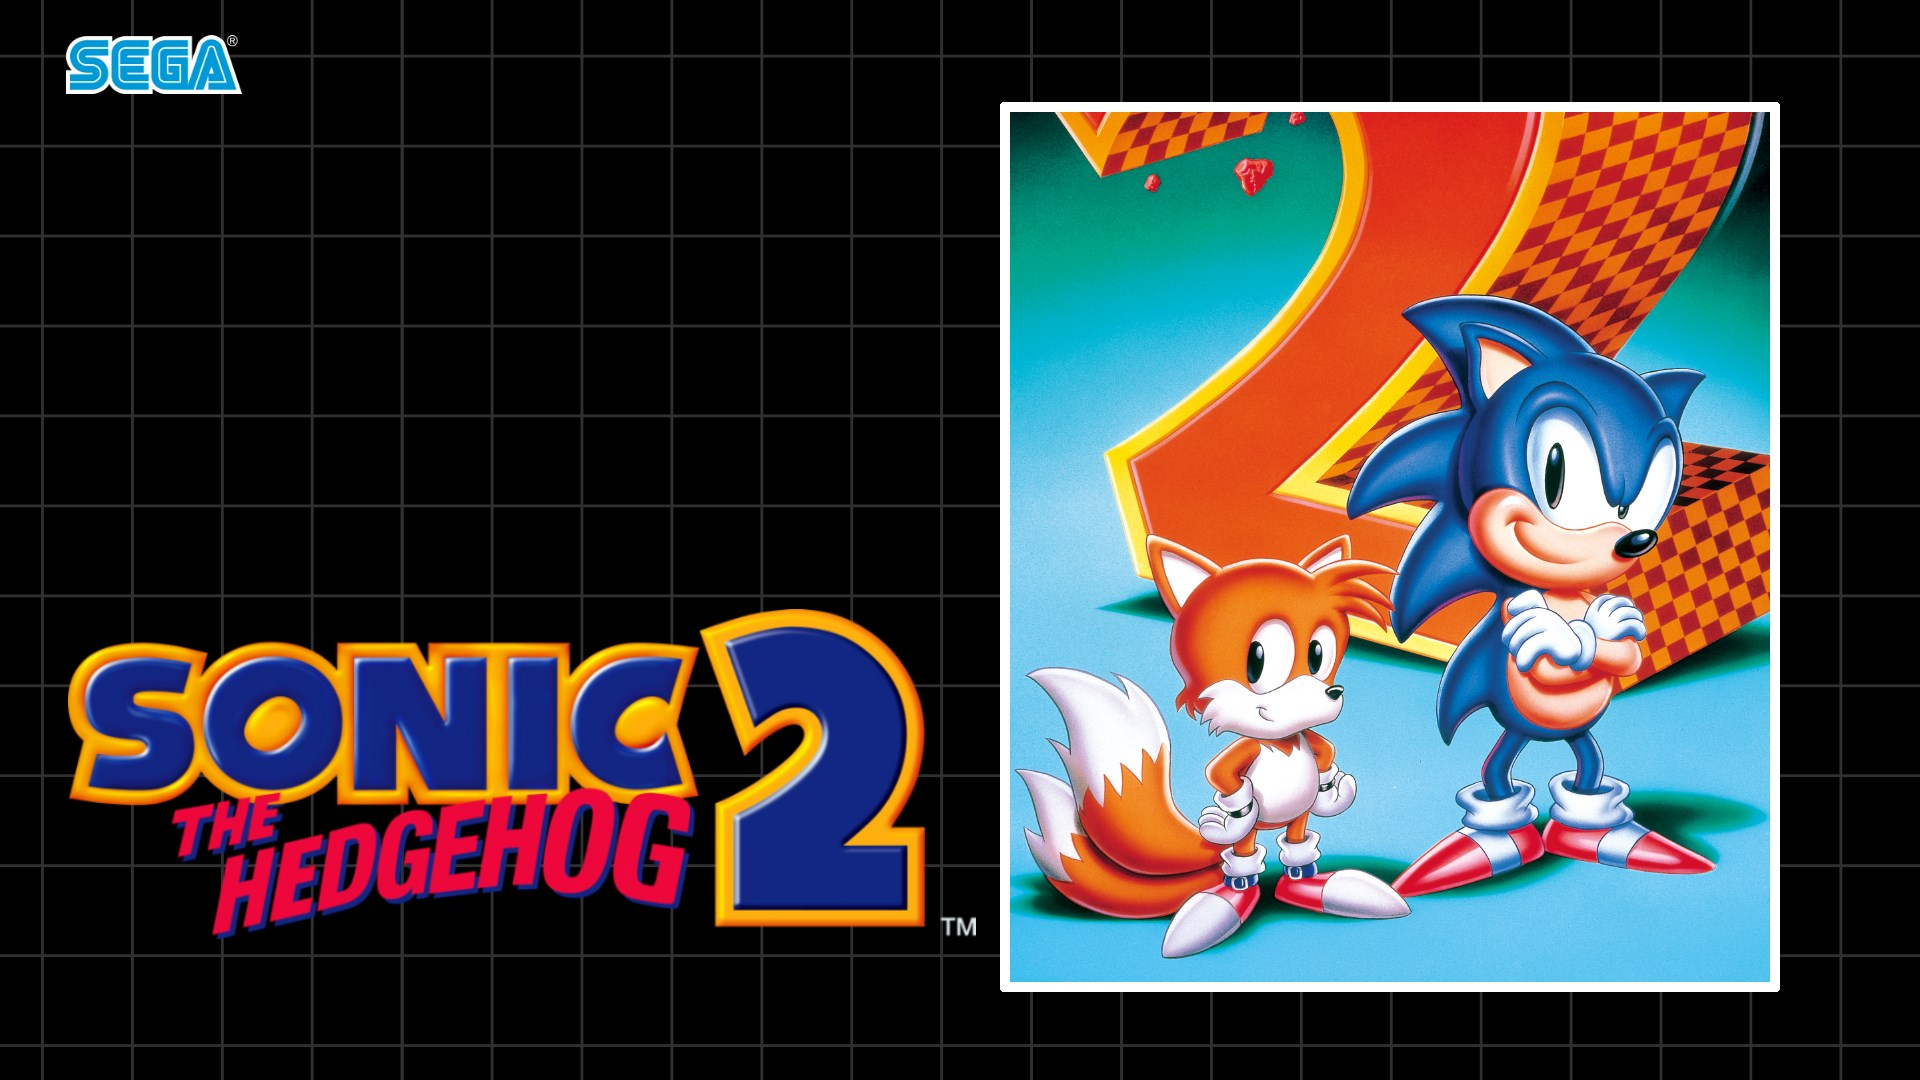 Sonic the Hedgehog & Tails